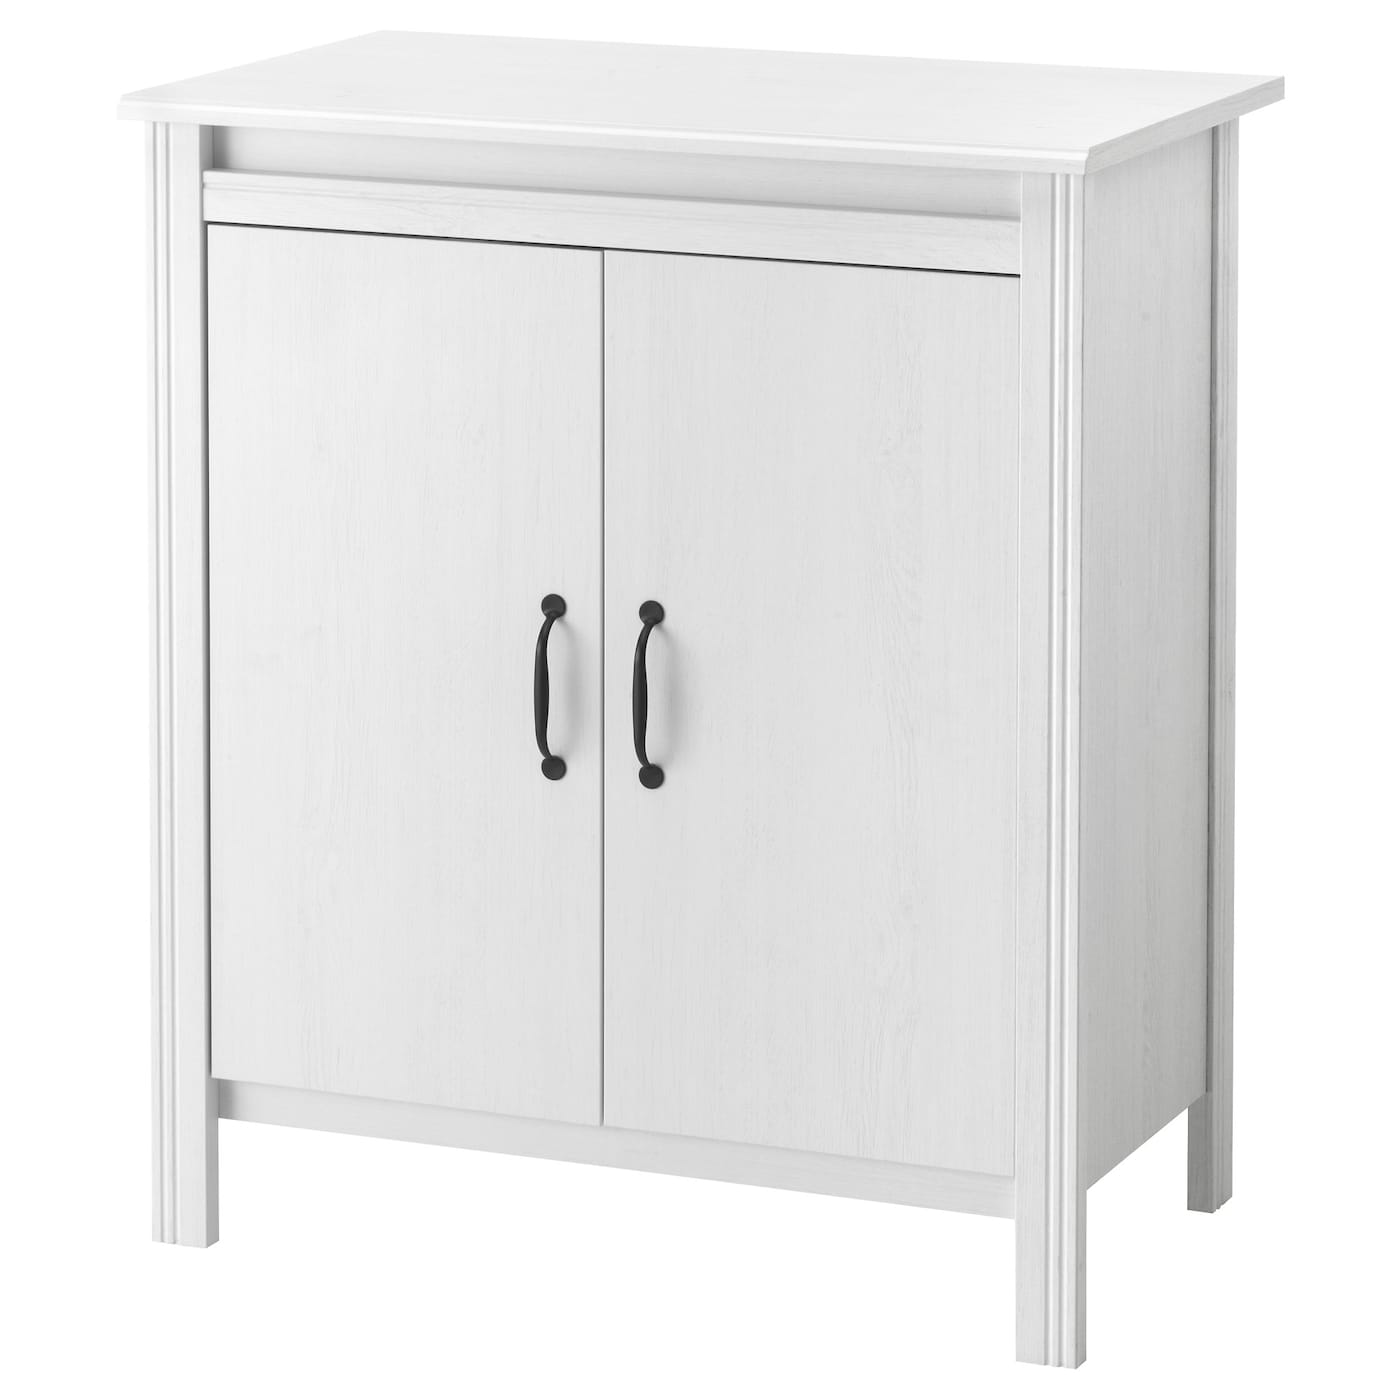 Brusali cabinet with doors white 80x93 cm ikea for Kommode 100 x 60